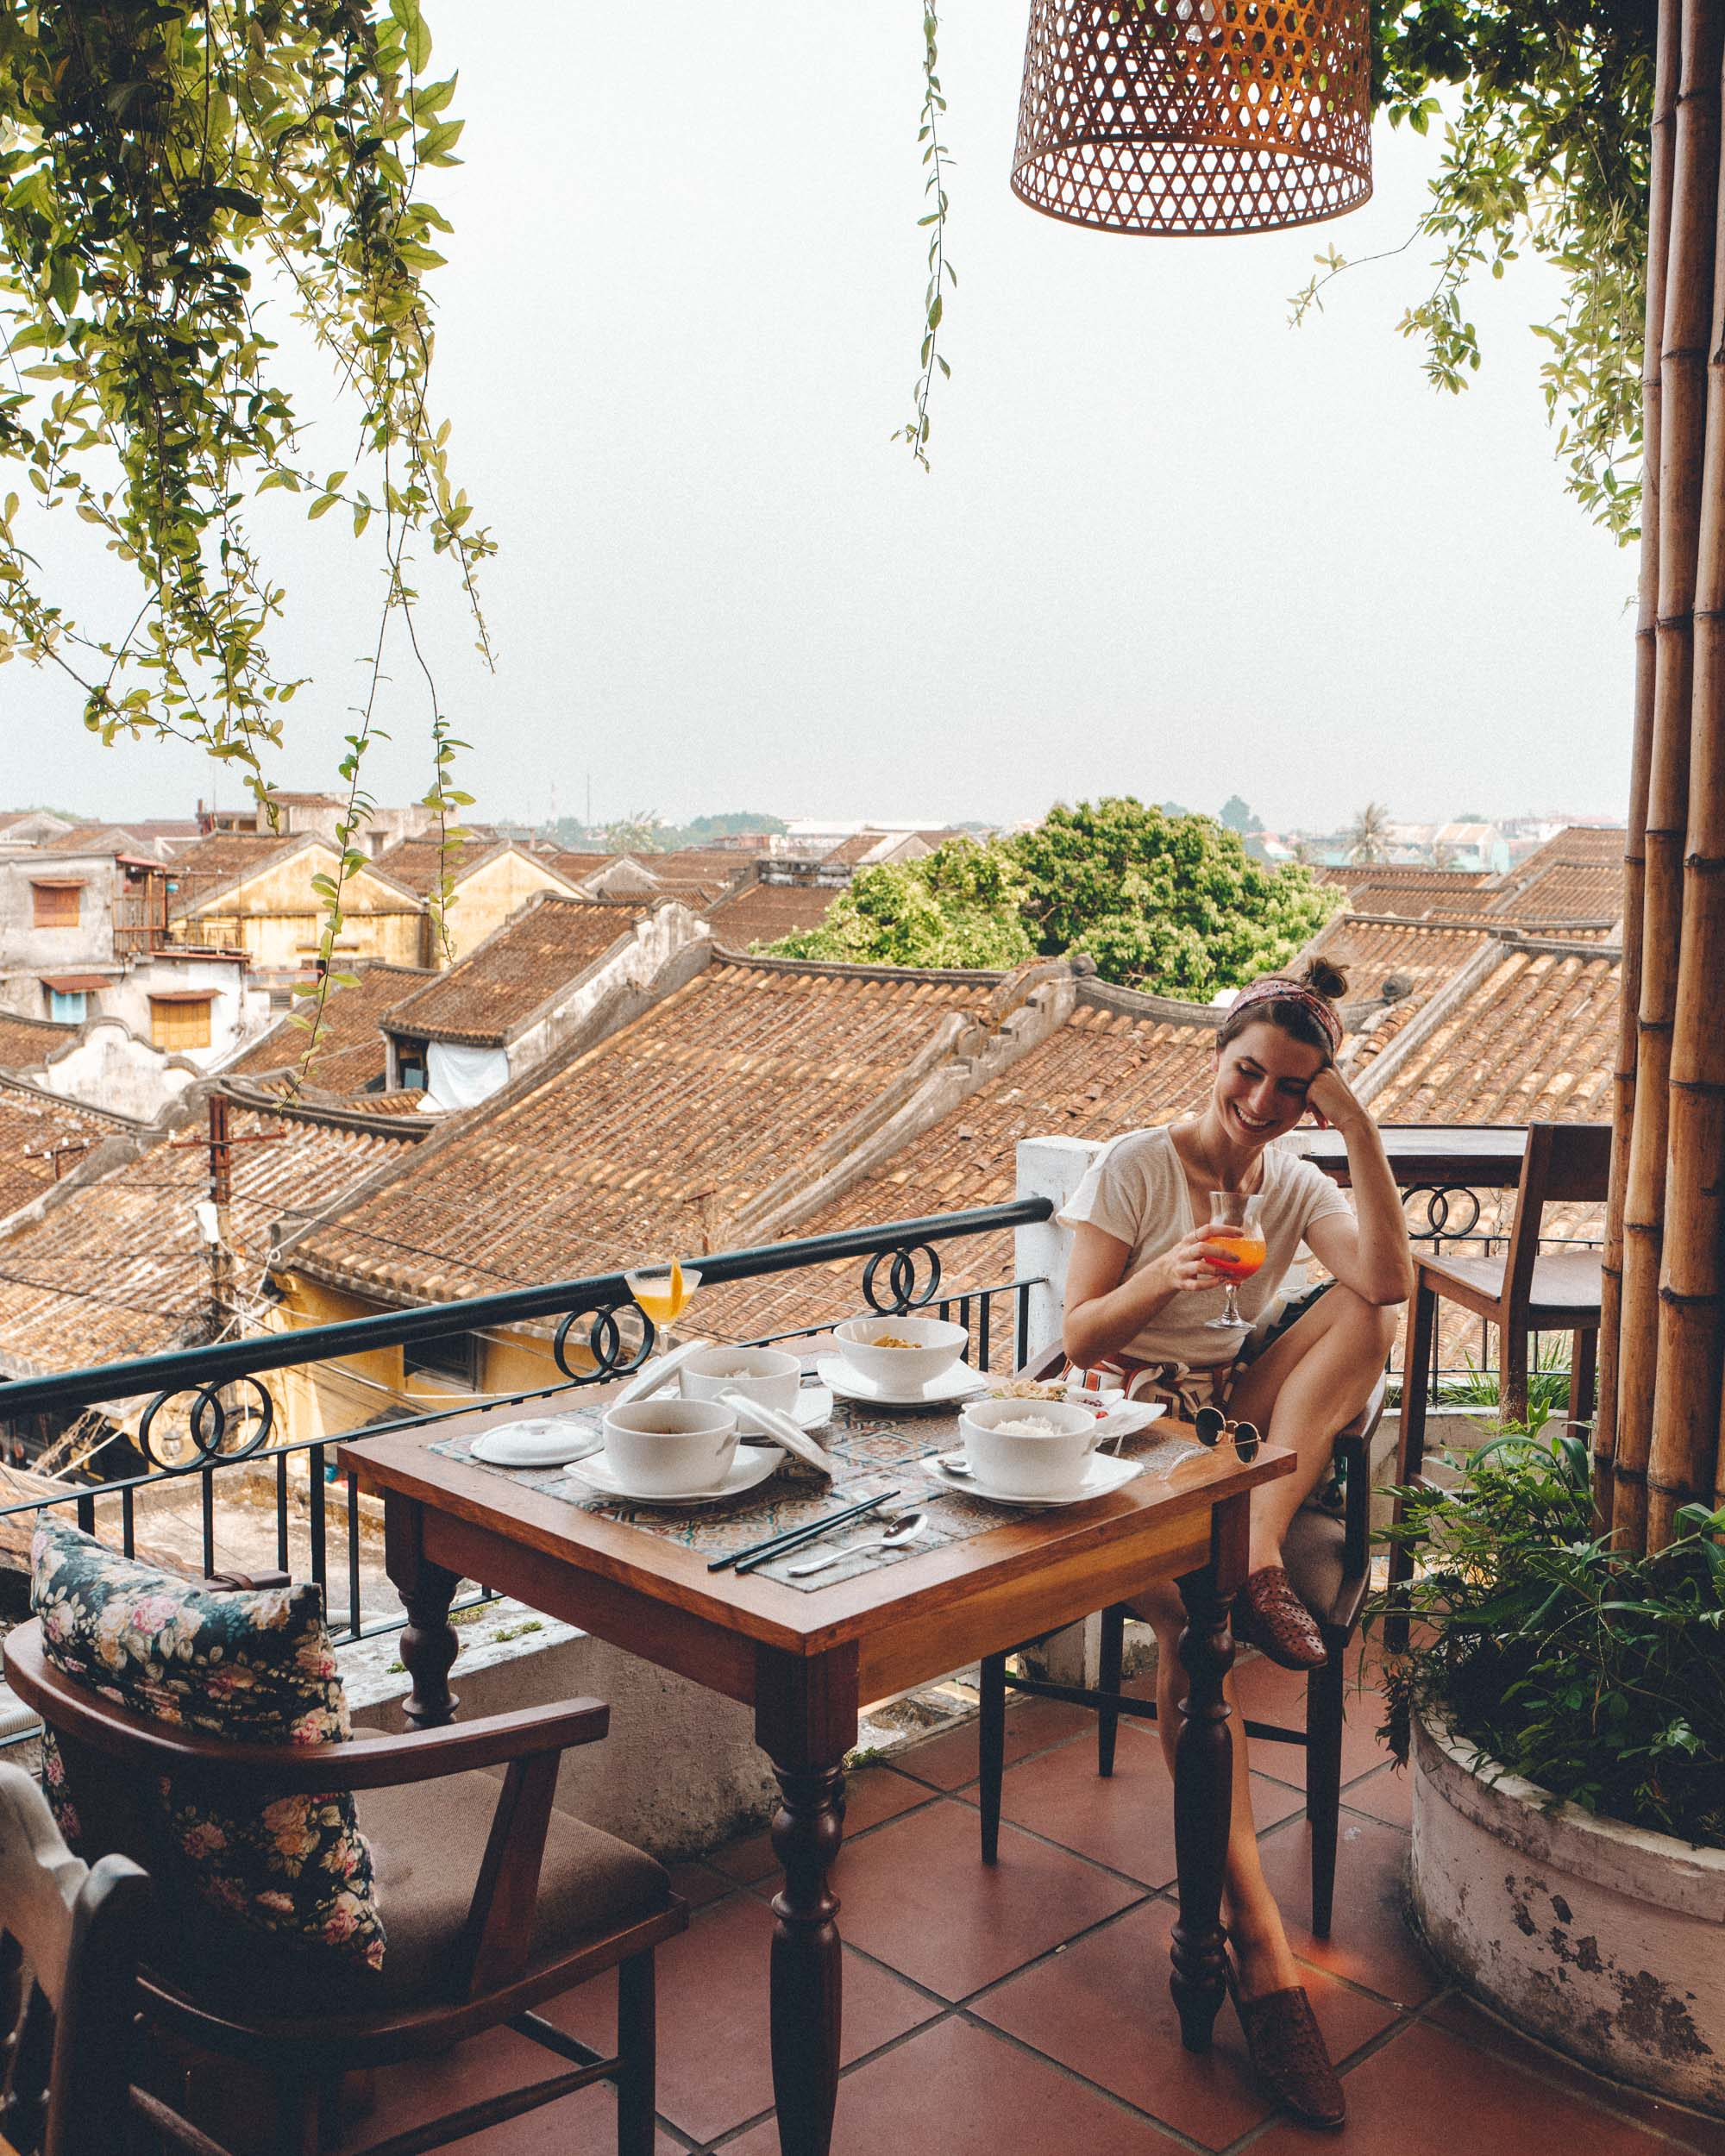 Best rooftop restaurant in Hoi An Vietnam